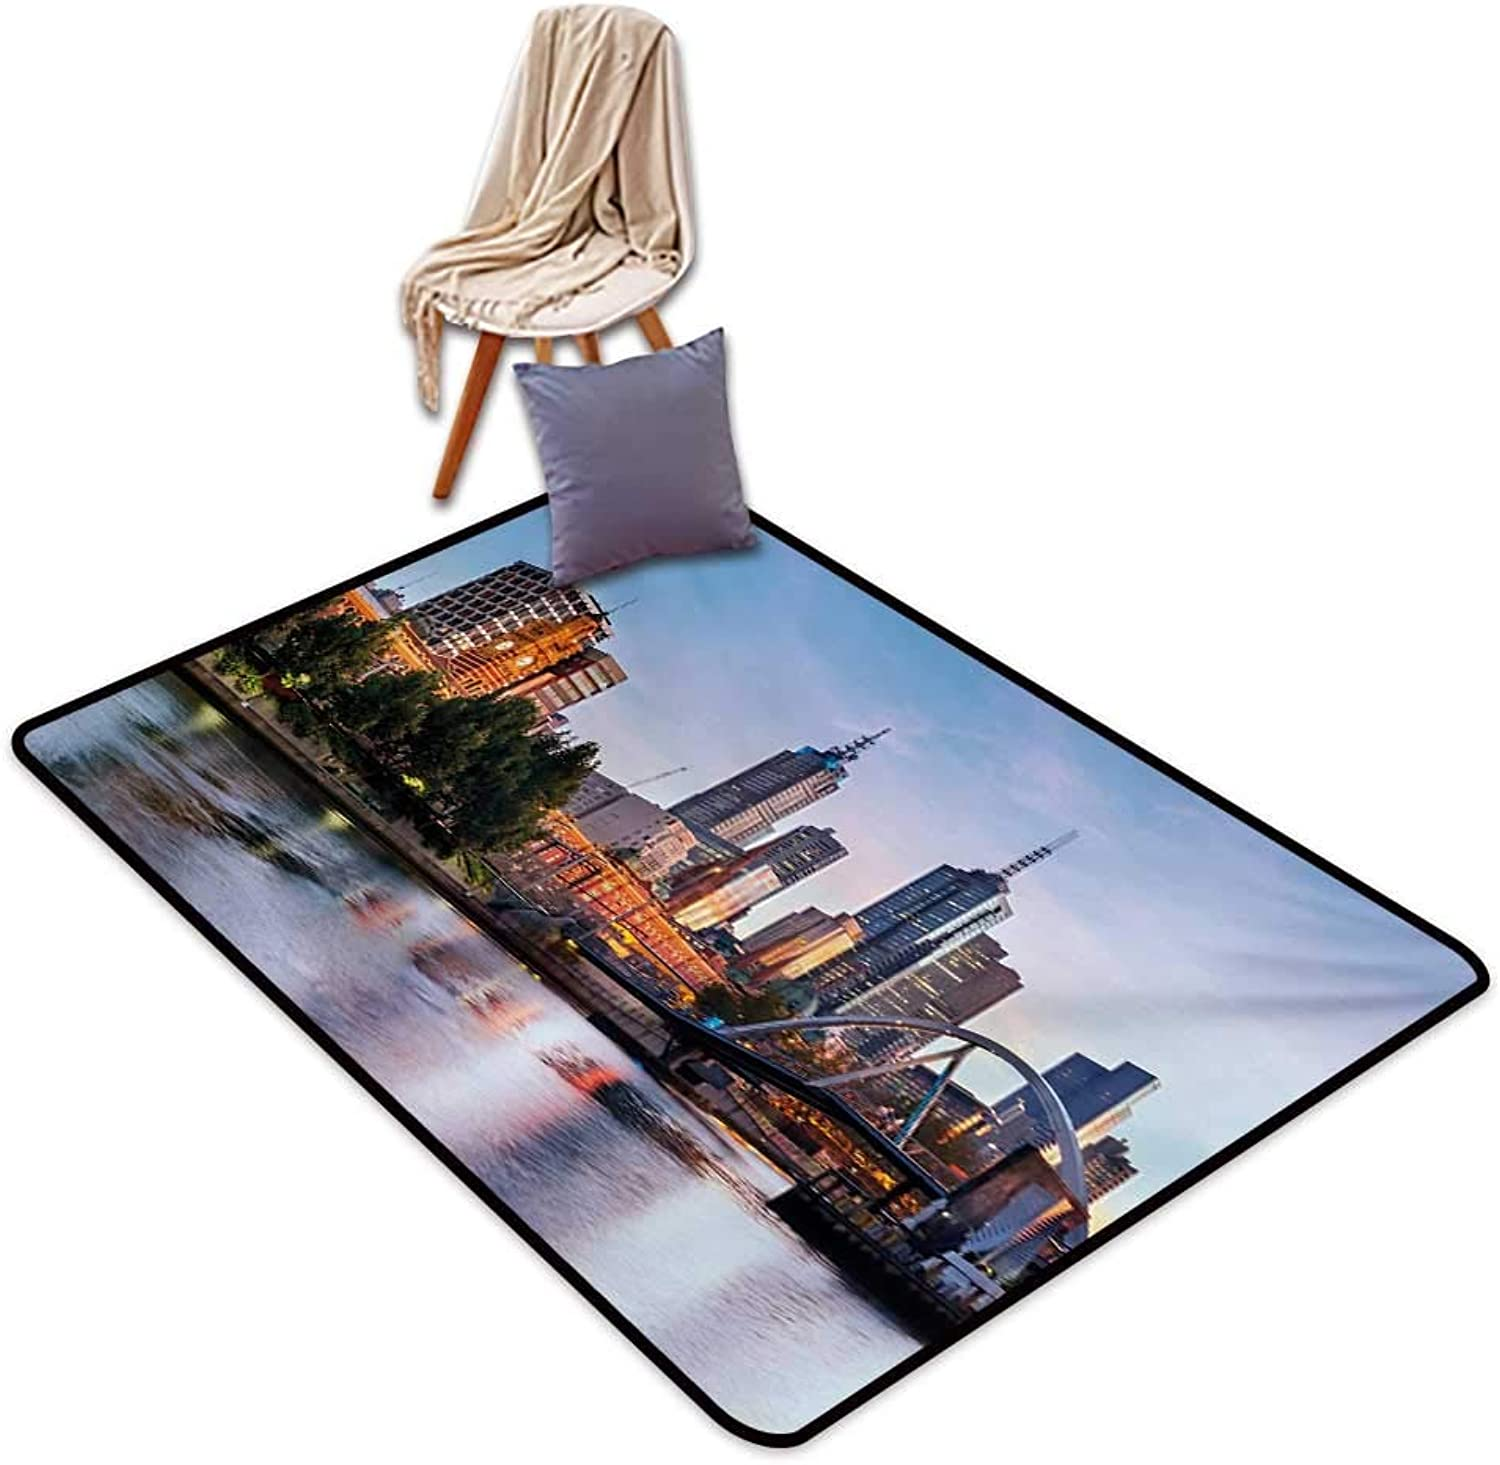 City Non-Slip Door mat Early Morning Scenery in Melbourne Australia Famous Yarra River Scenic Water Absorption, Anti-Skid and Oil Proof 32  Wx48 L orange Green Pale bluee